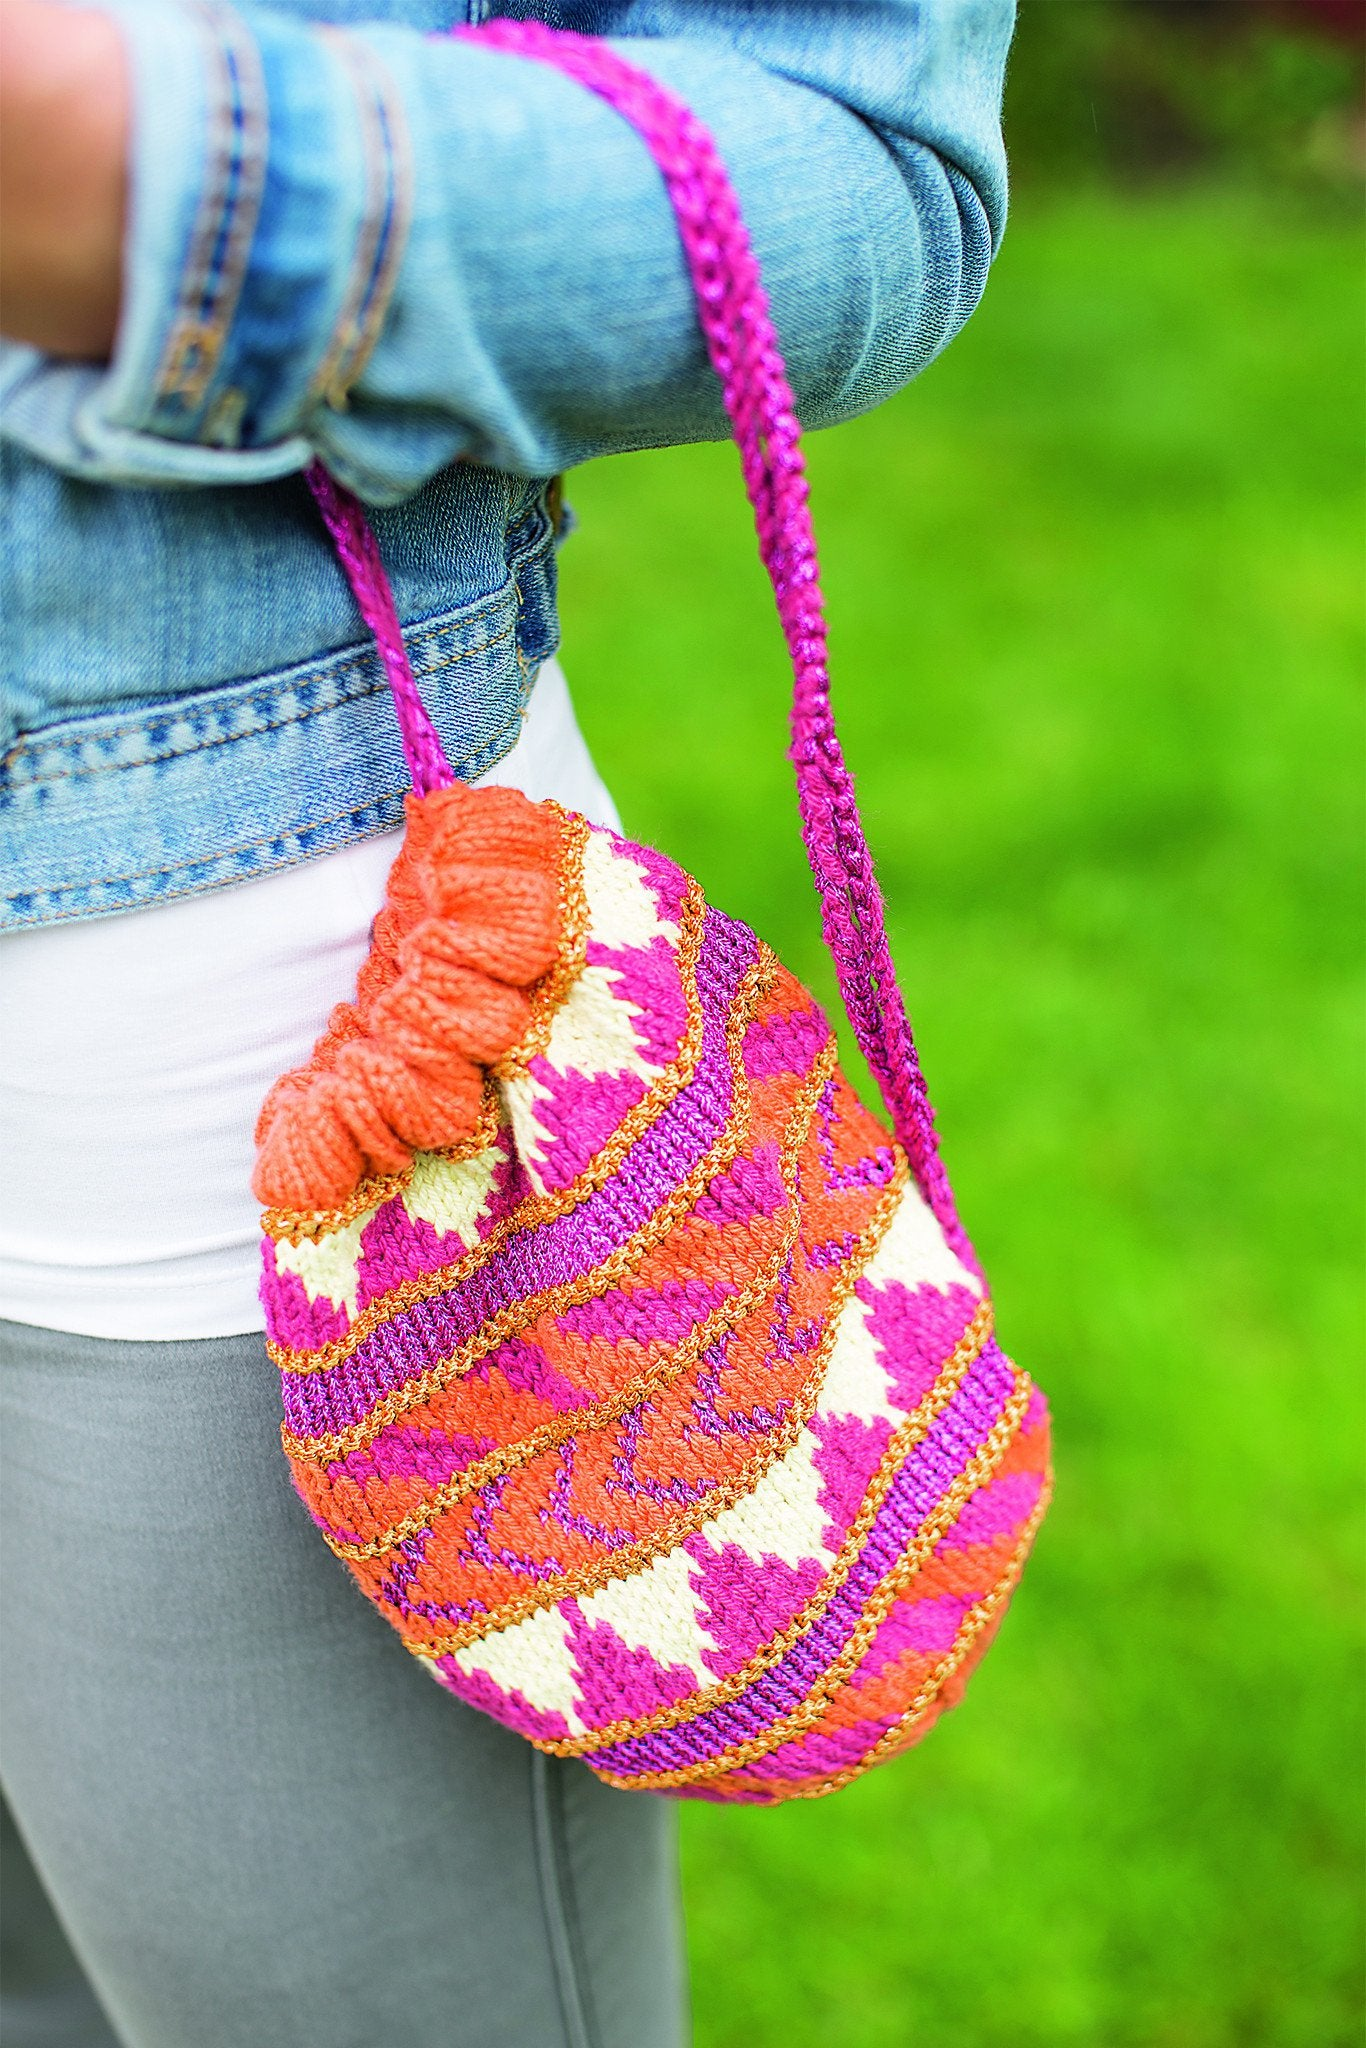 Patterned Drawstring Bag Knitting Pattern – The Knitting Network